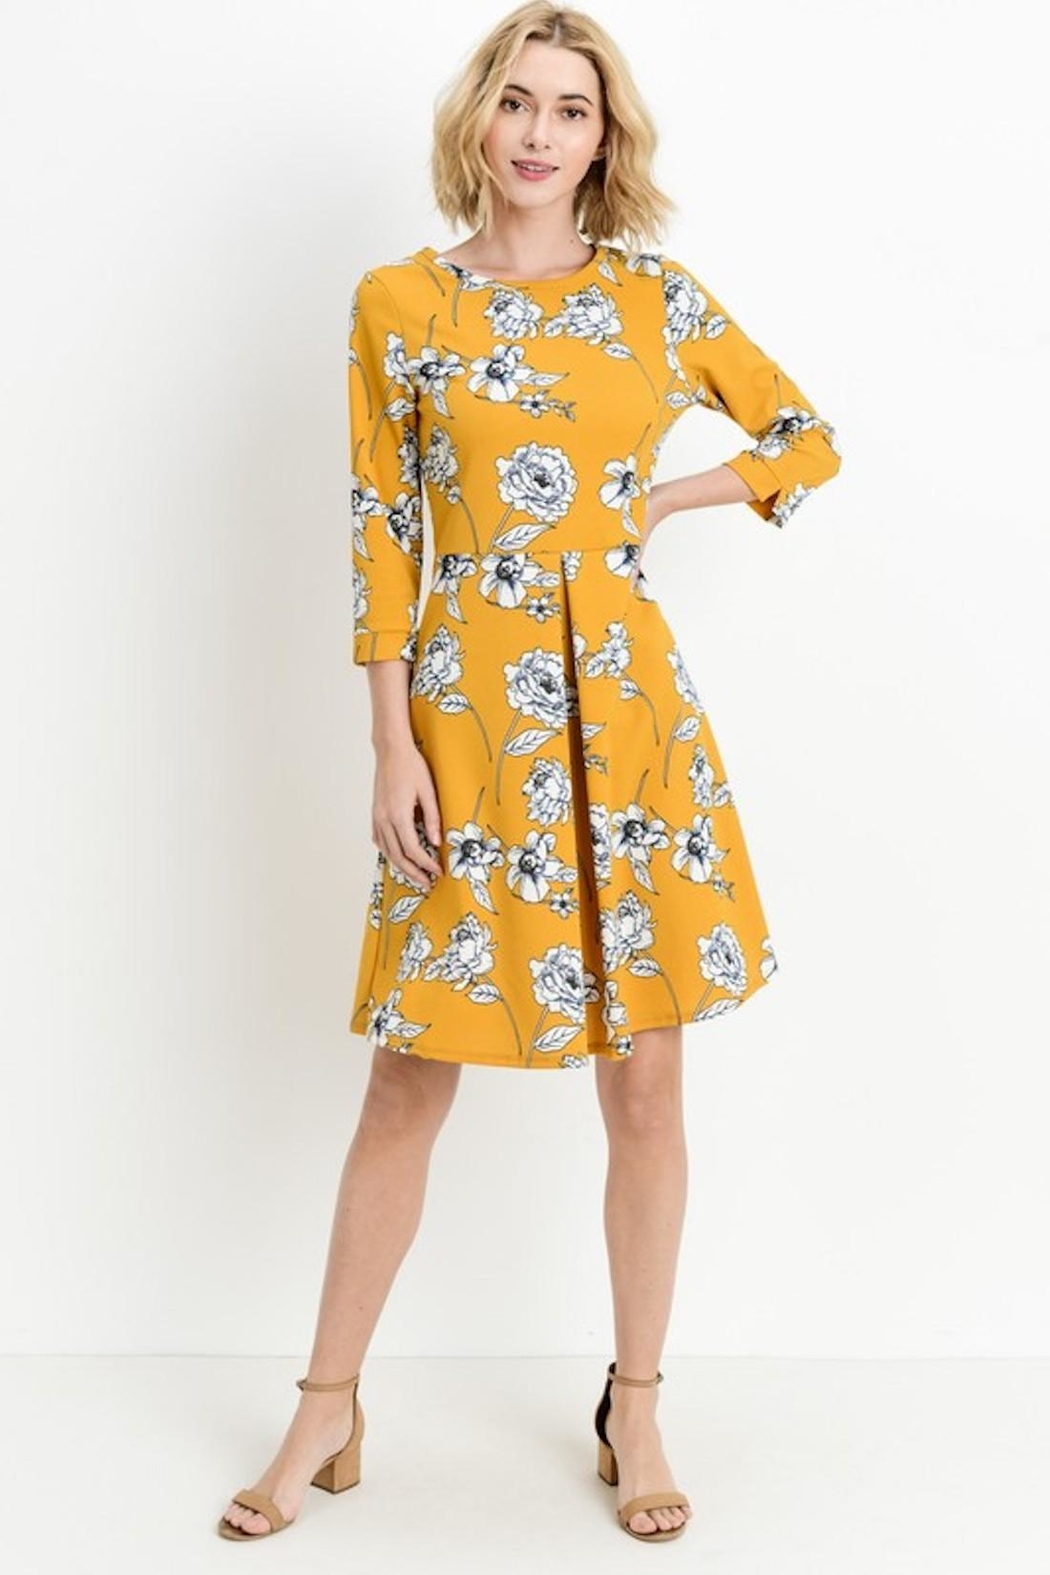 Les Amis Gorgeous Mustard-Floral Dress - Side Cropped Image